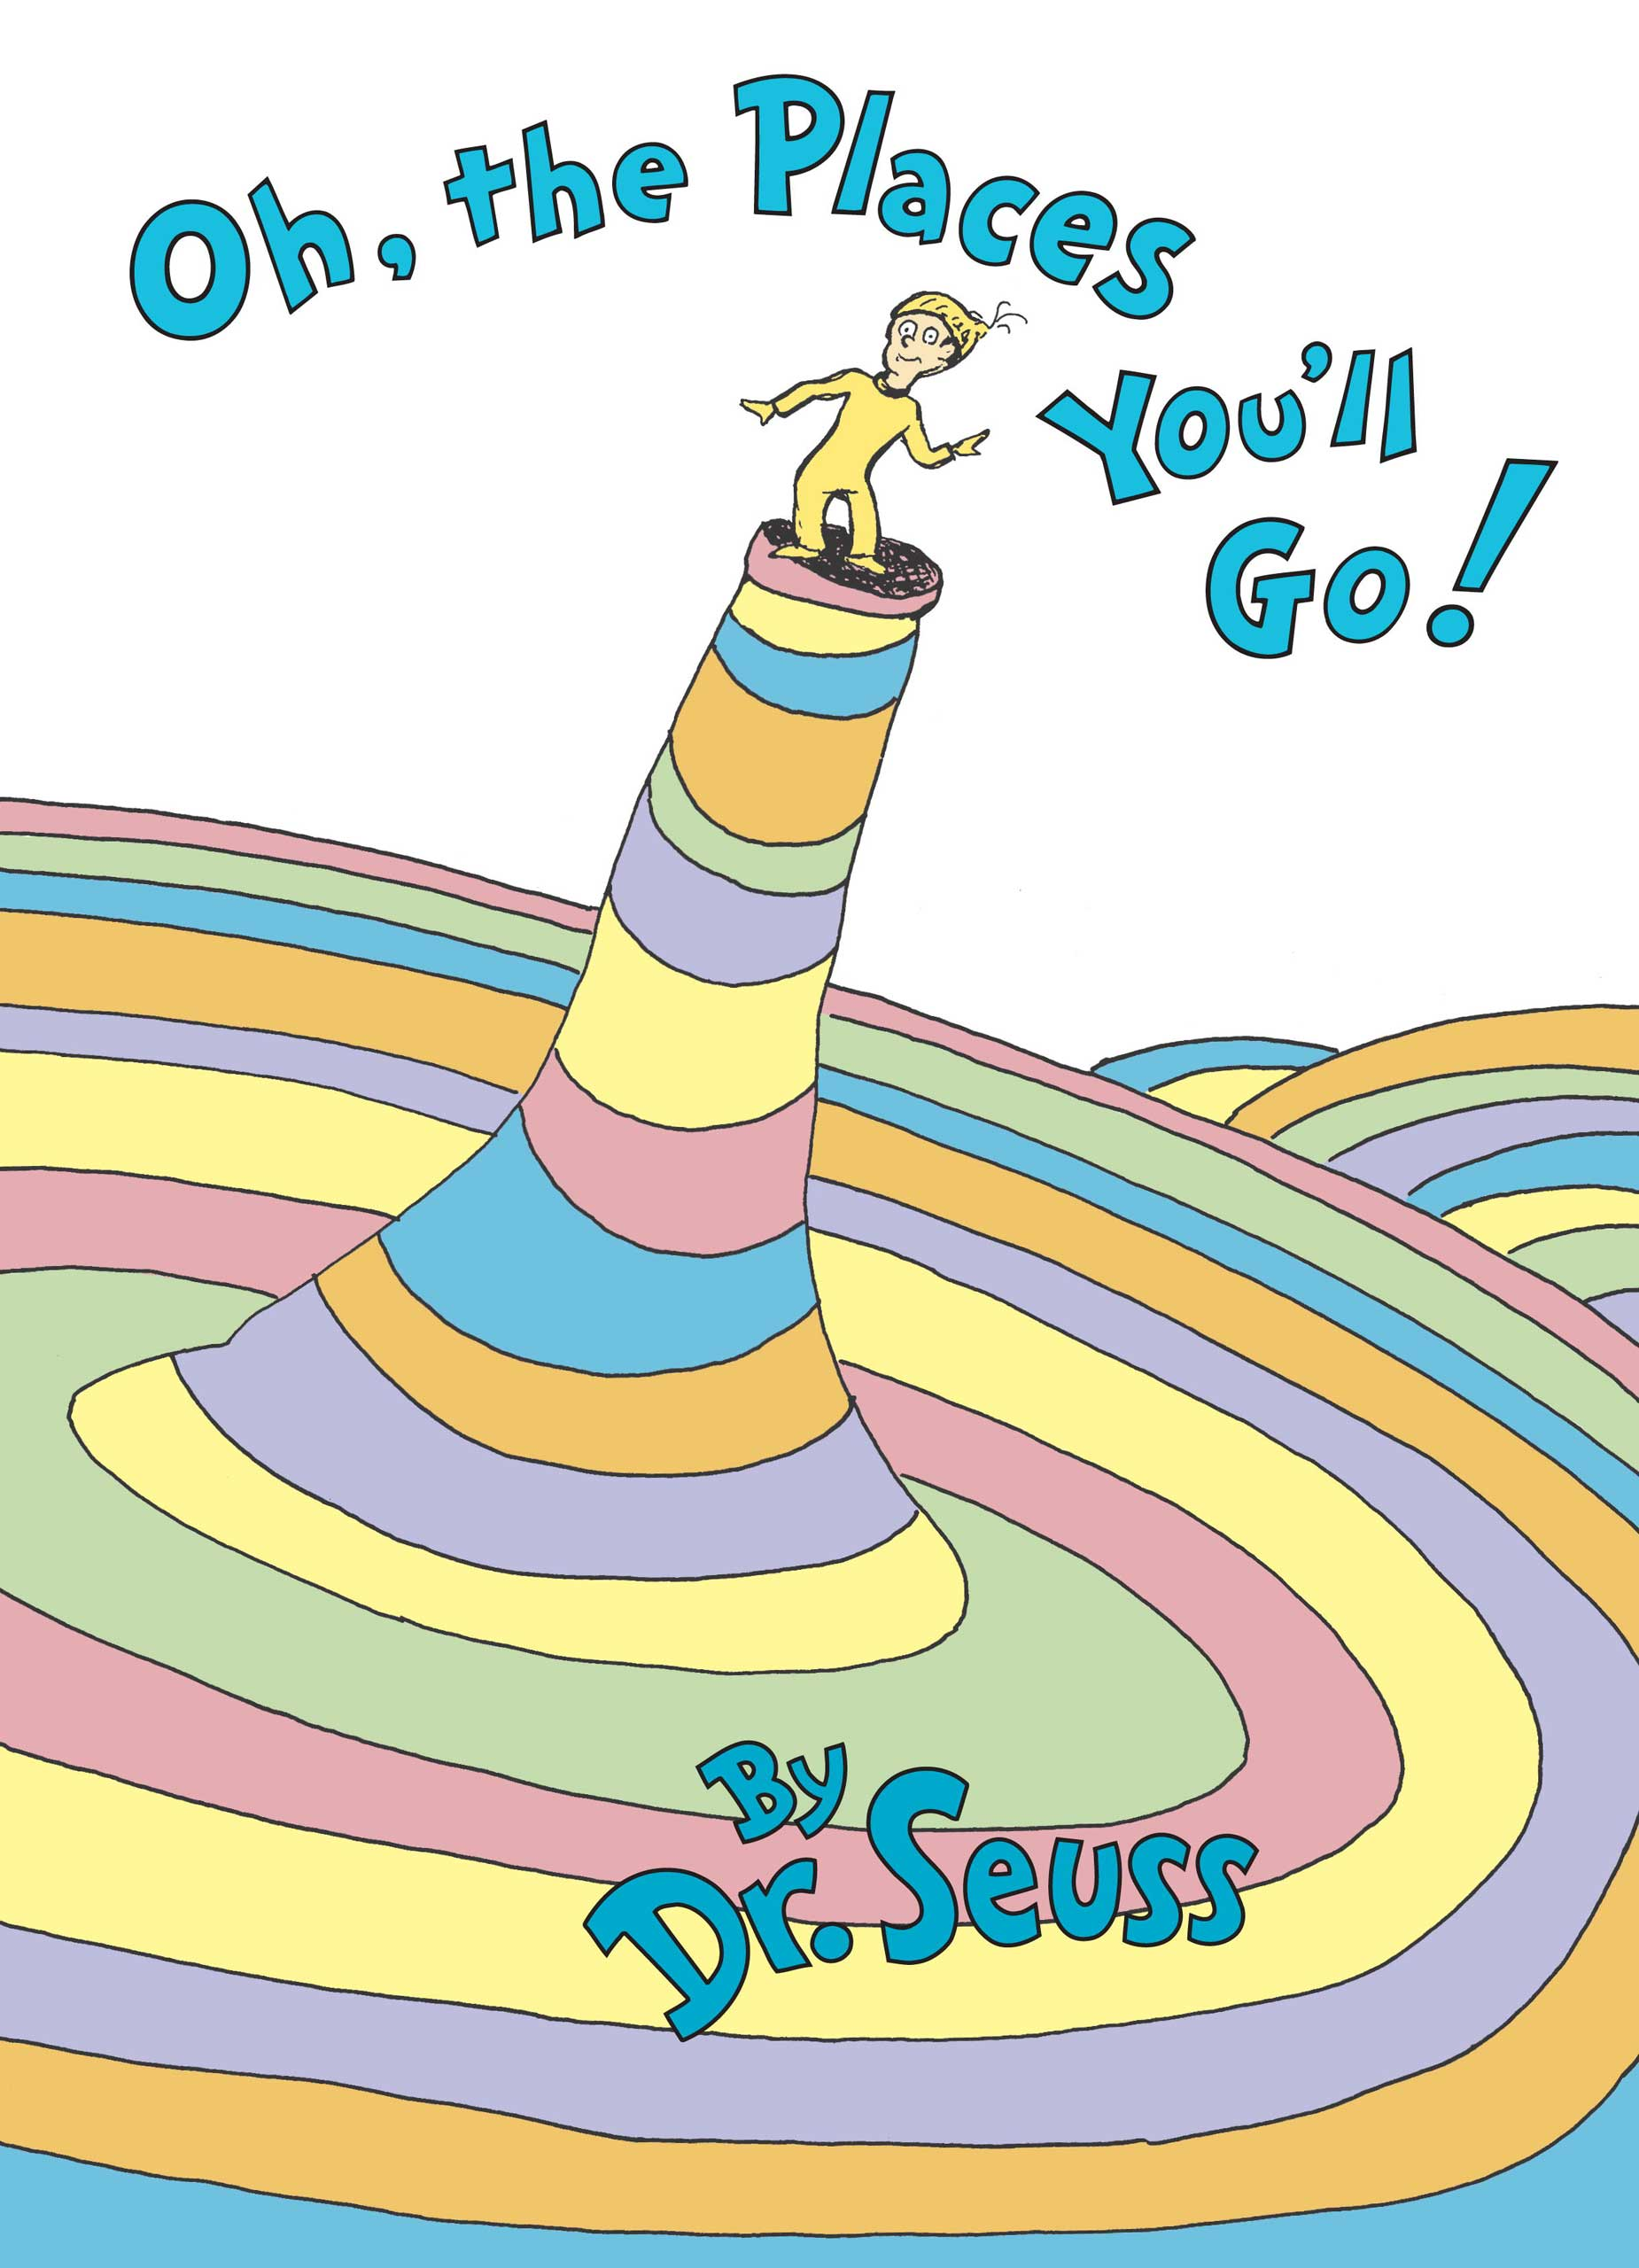 Oh, The Places You'll Go!, by Dr. Seuss.                                                                                                                            The optimistic poem is perfect for anyone about to head into a new world, whether that's middle school or the job market.                                                                                                                            Buy now: Oh, The Places You'll Go!